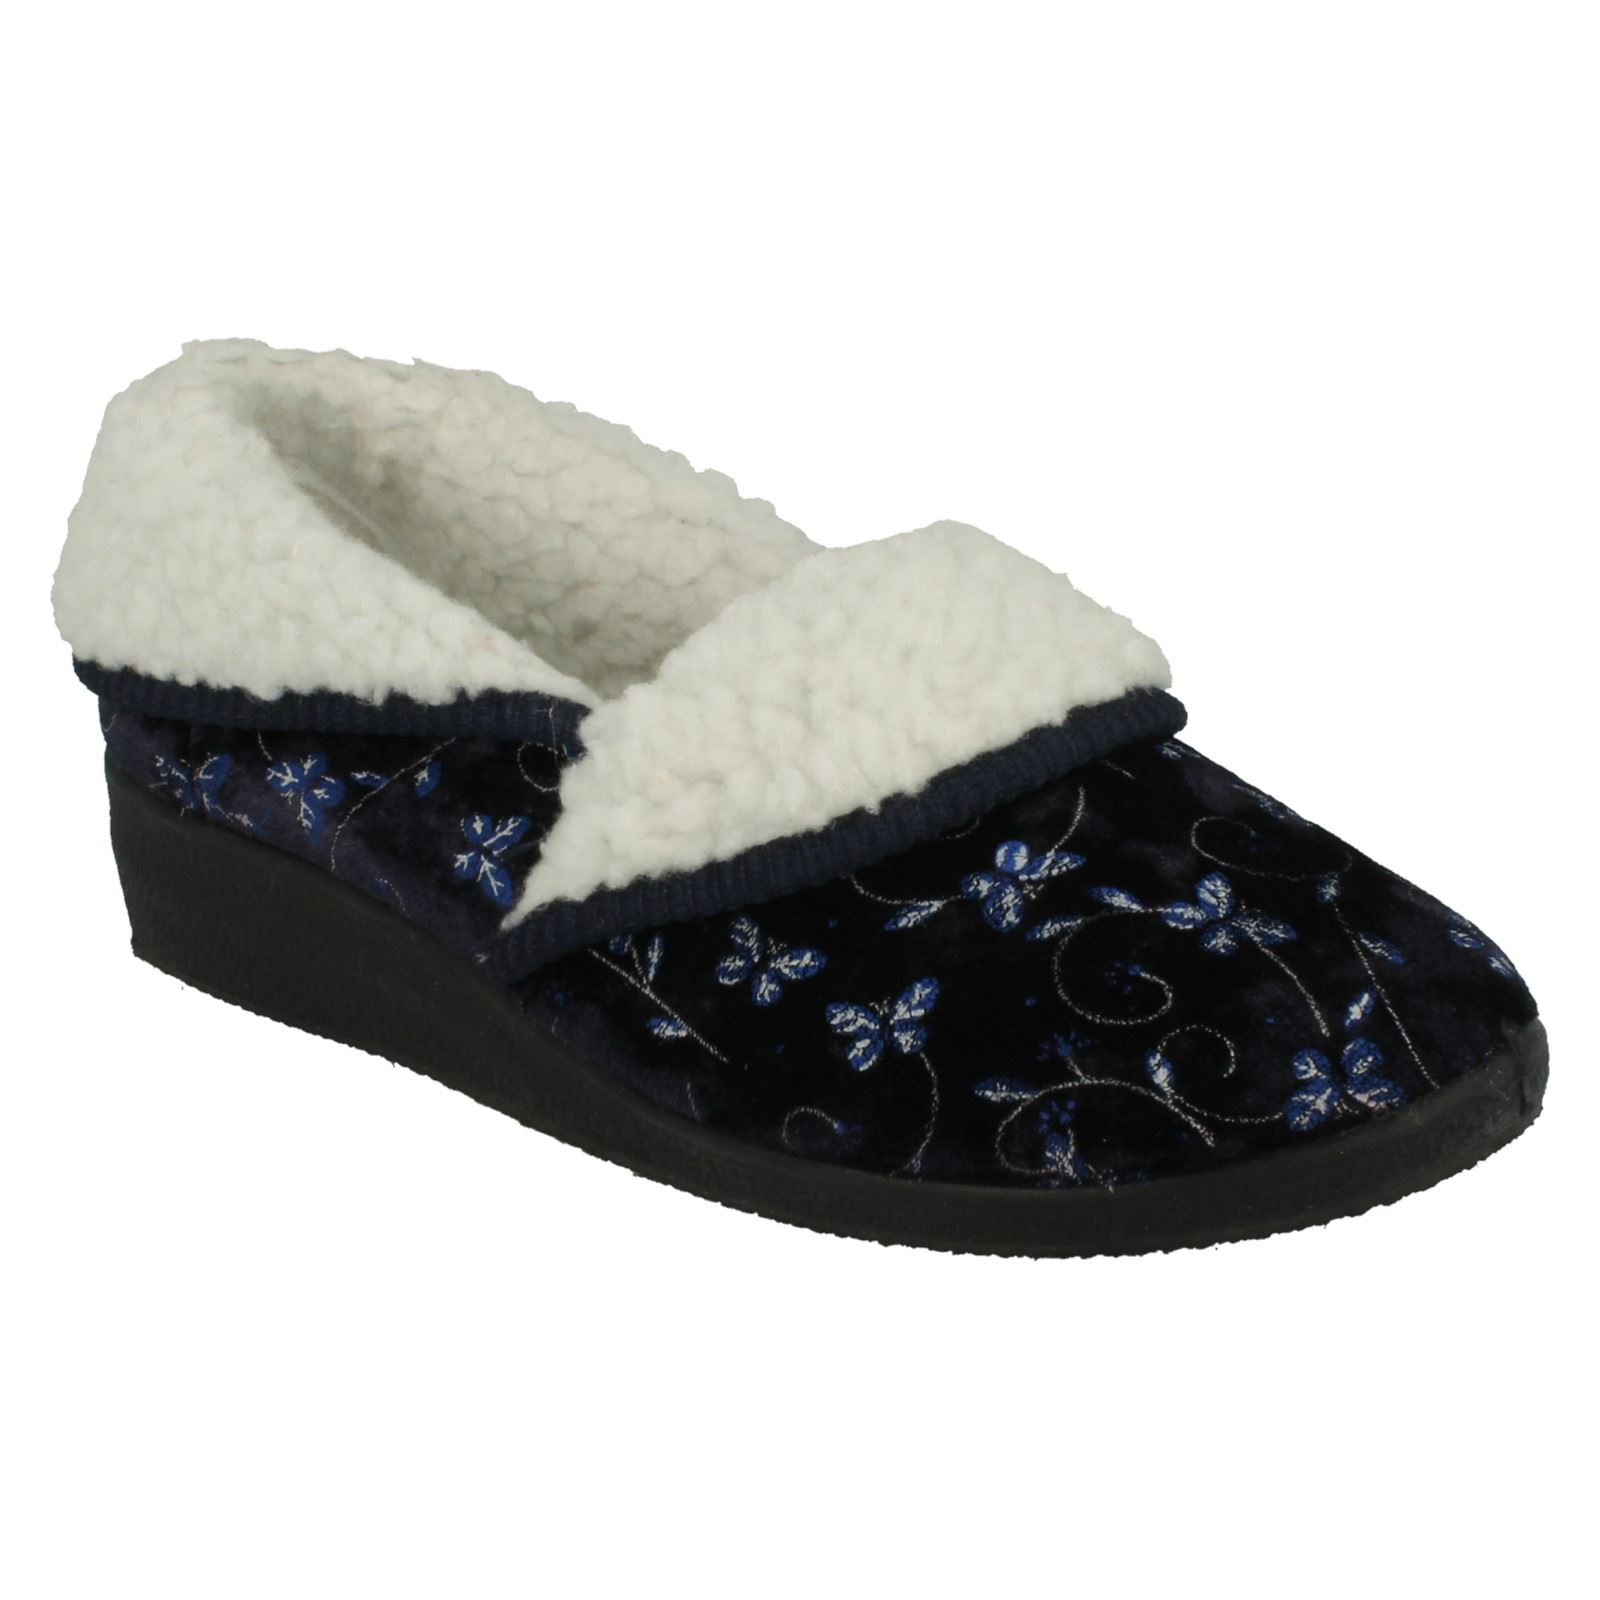 Ladies-Four-Seasons-House-Slippers-Edith thumbnail 13